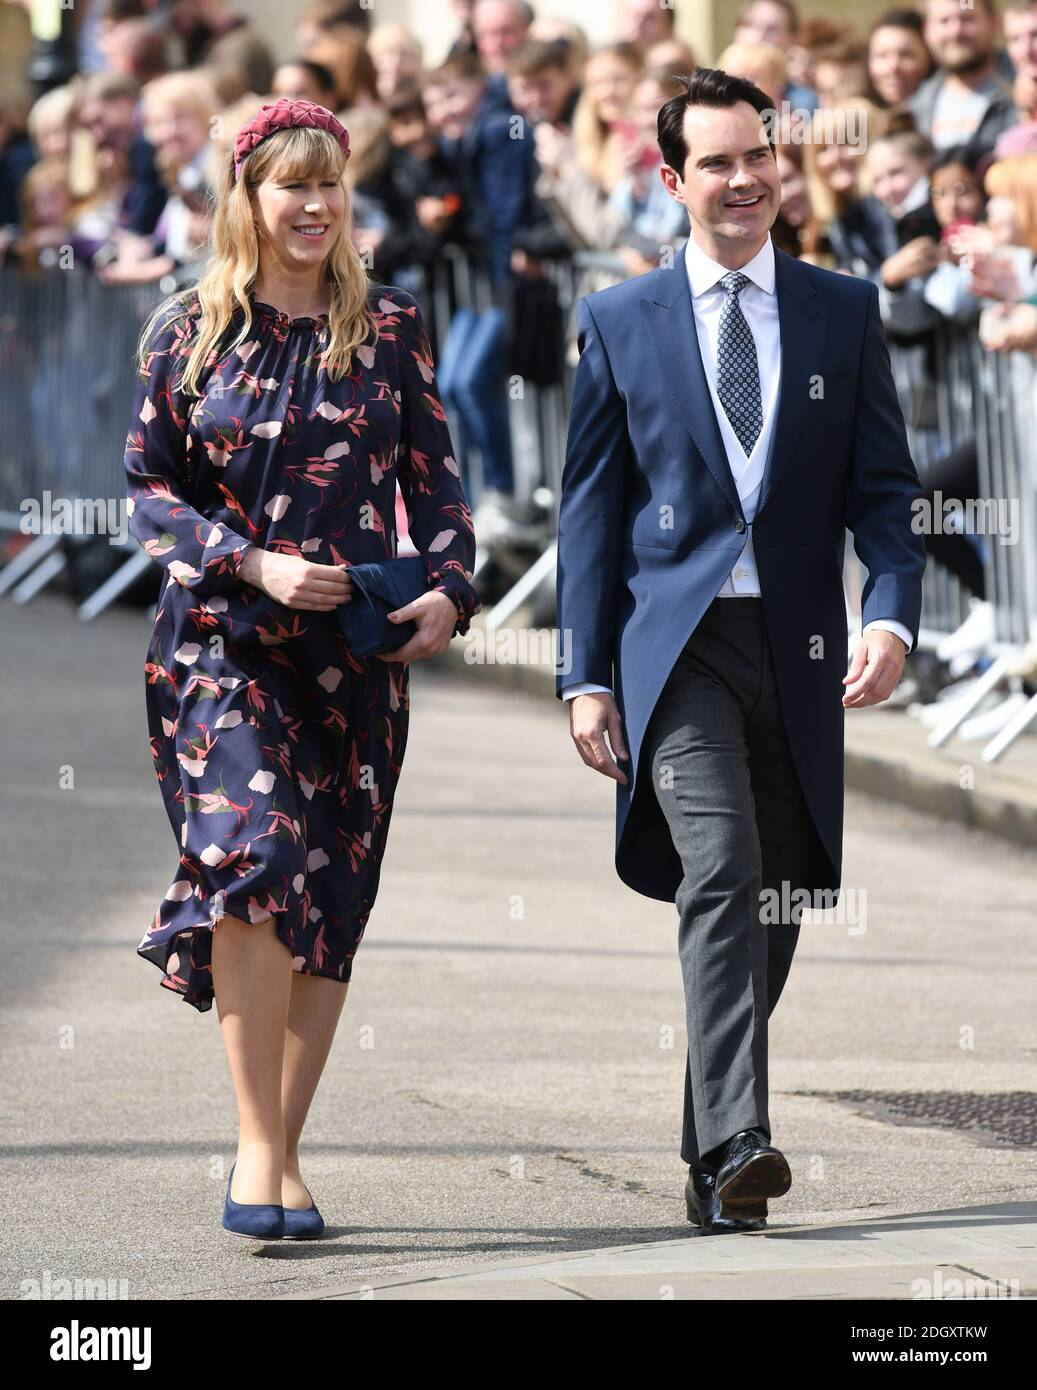 Jimmy Carr And Karoline Copping Arriving At The Wedding Of Ellie Goulding And Casper Jopling York Minster Photo Credit Should Read Doug Peters Empics Stock Photo Alamy Select from premium karoline copping of the highest quality. alamy